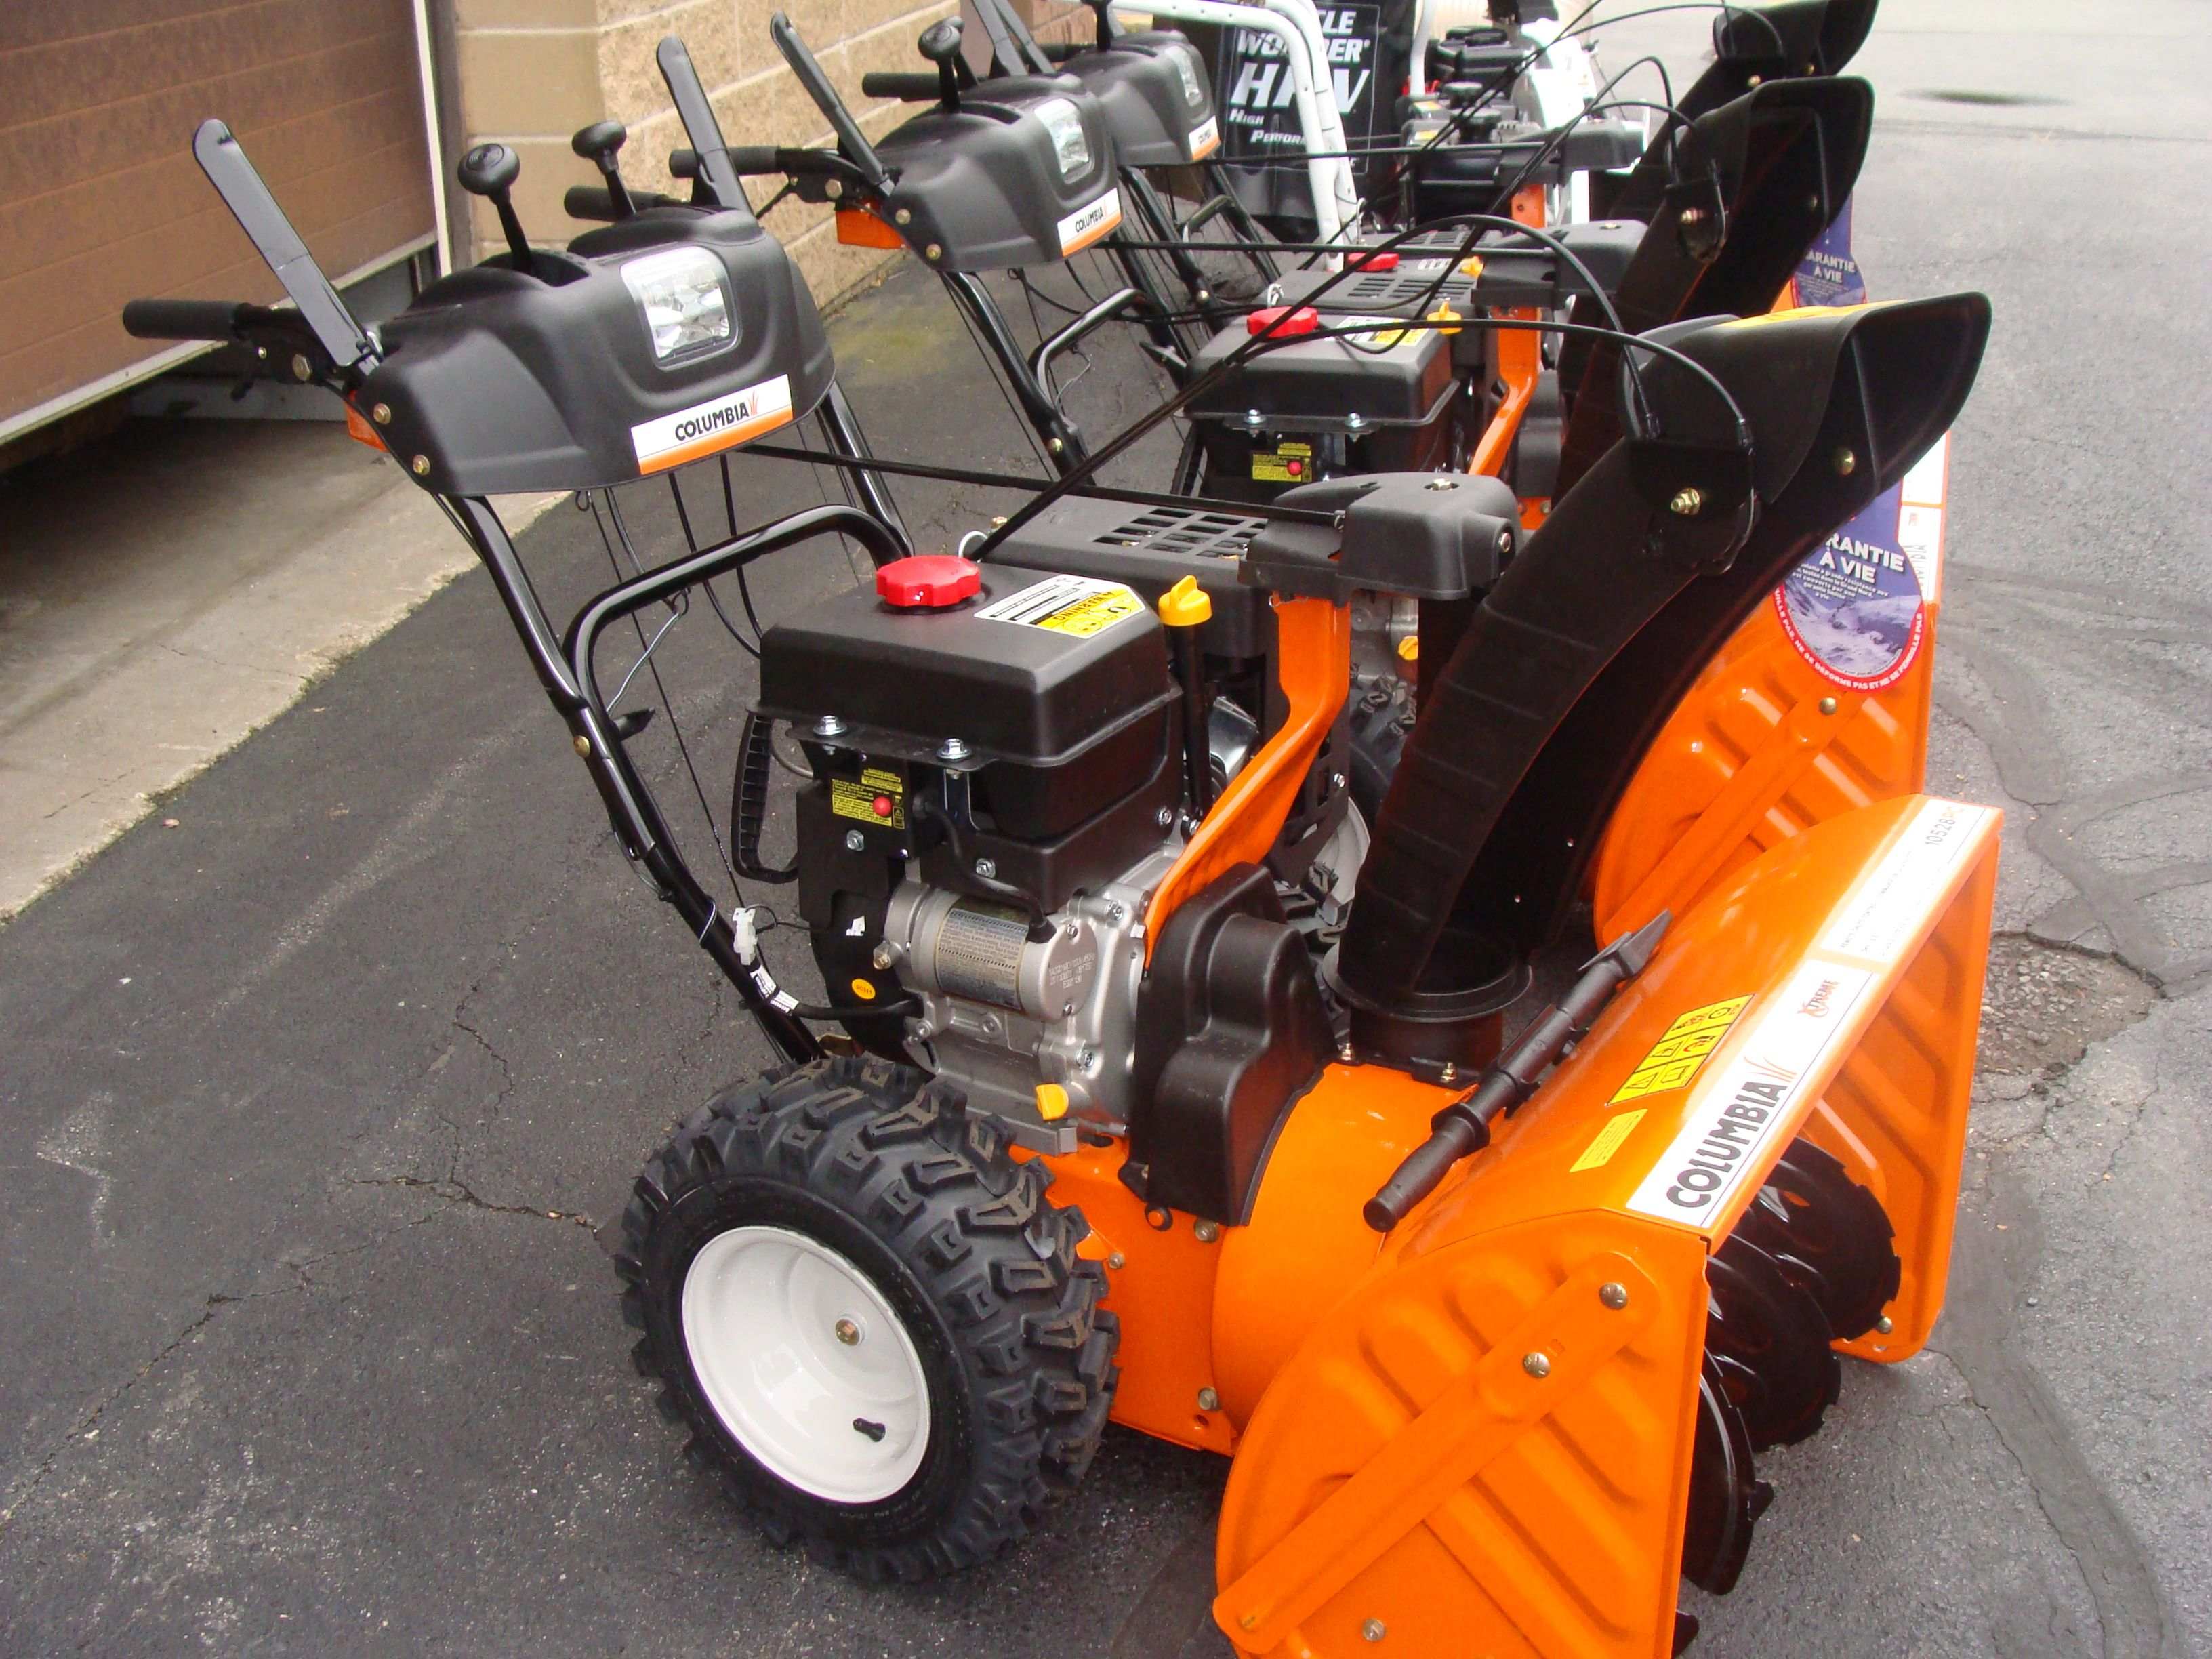 Now is the time to get your Snow BLower! Snow blower